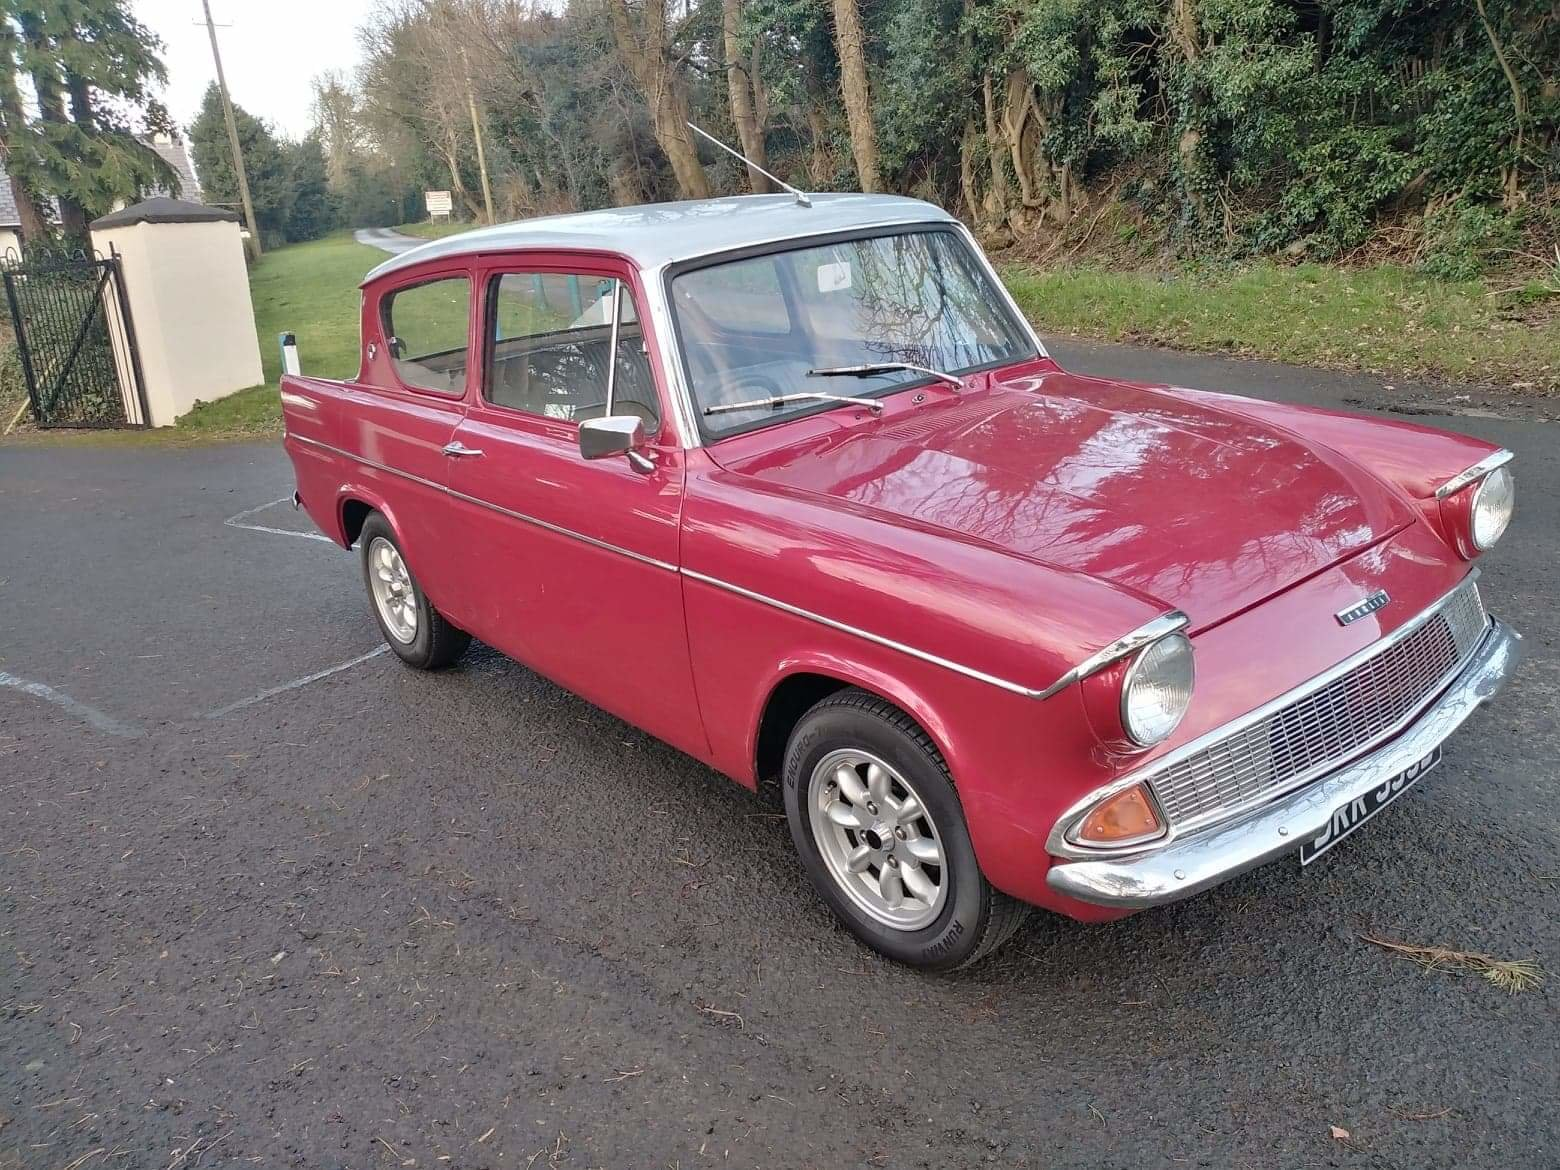 1964 Ford anglia For Sale (picture 1 of 4)